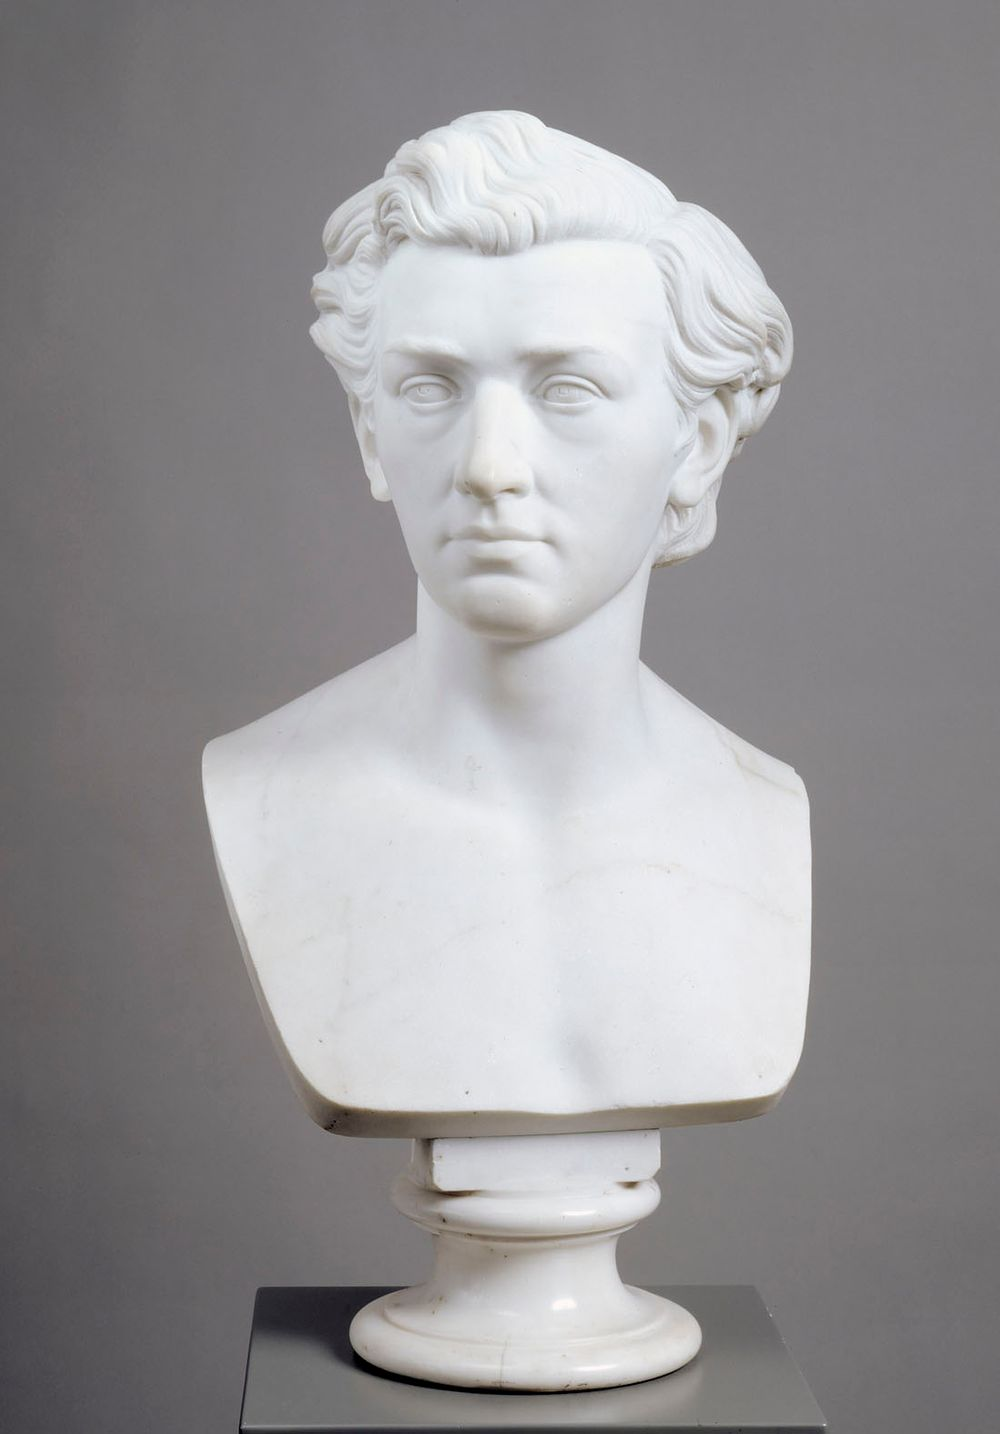 Bust of The Painter Werner Holmberg